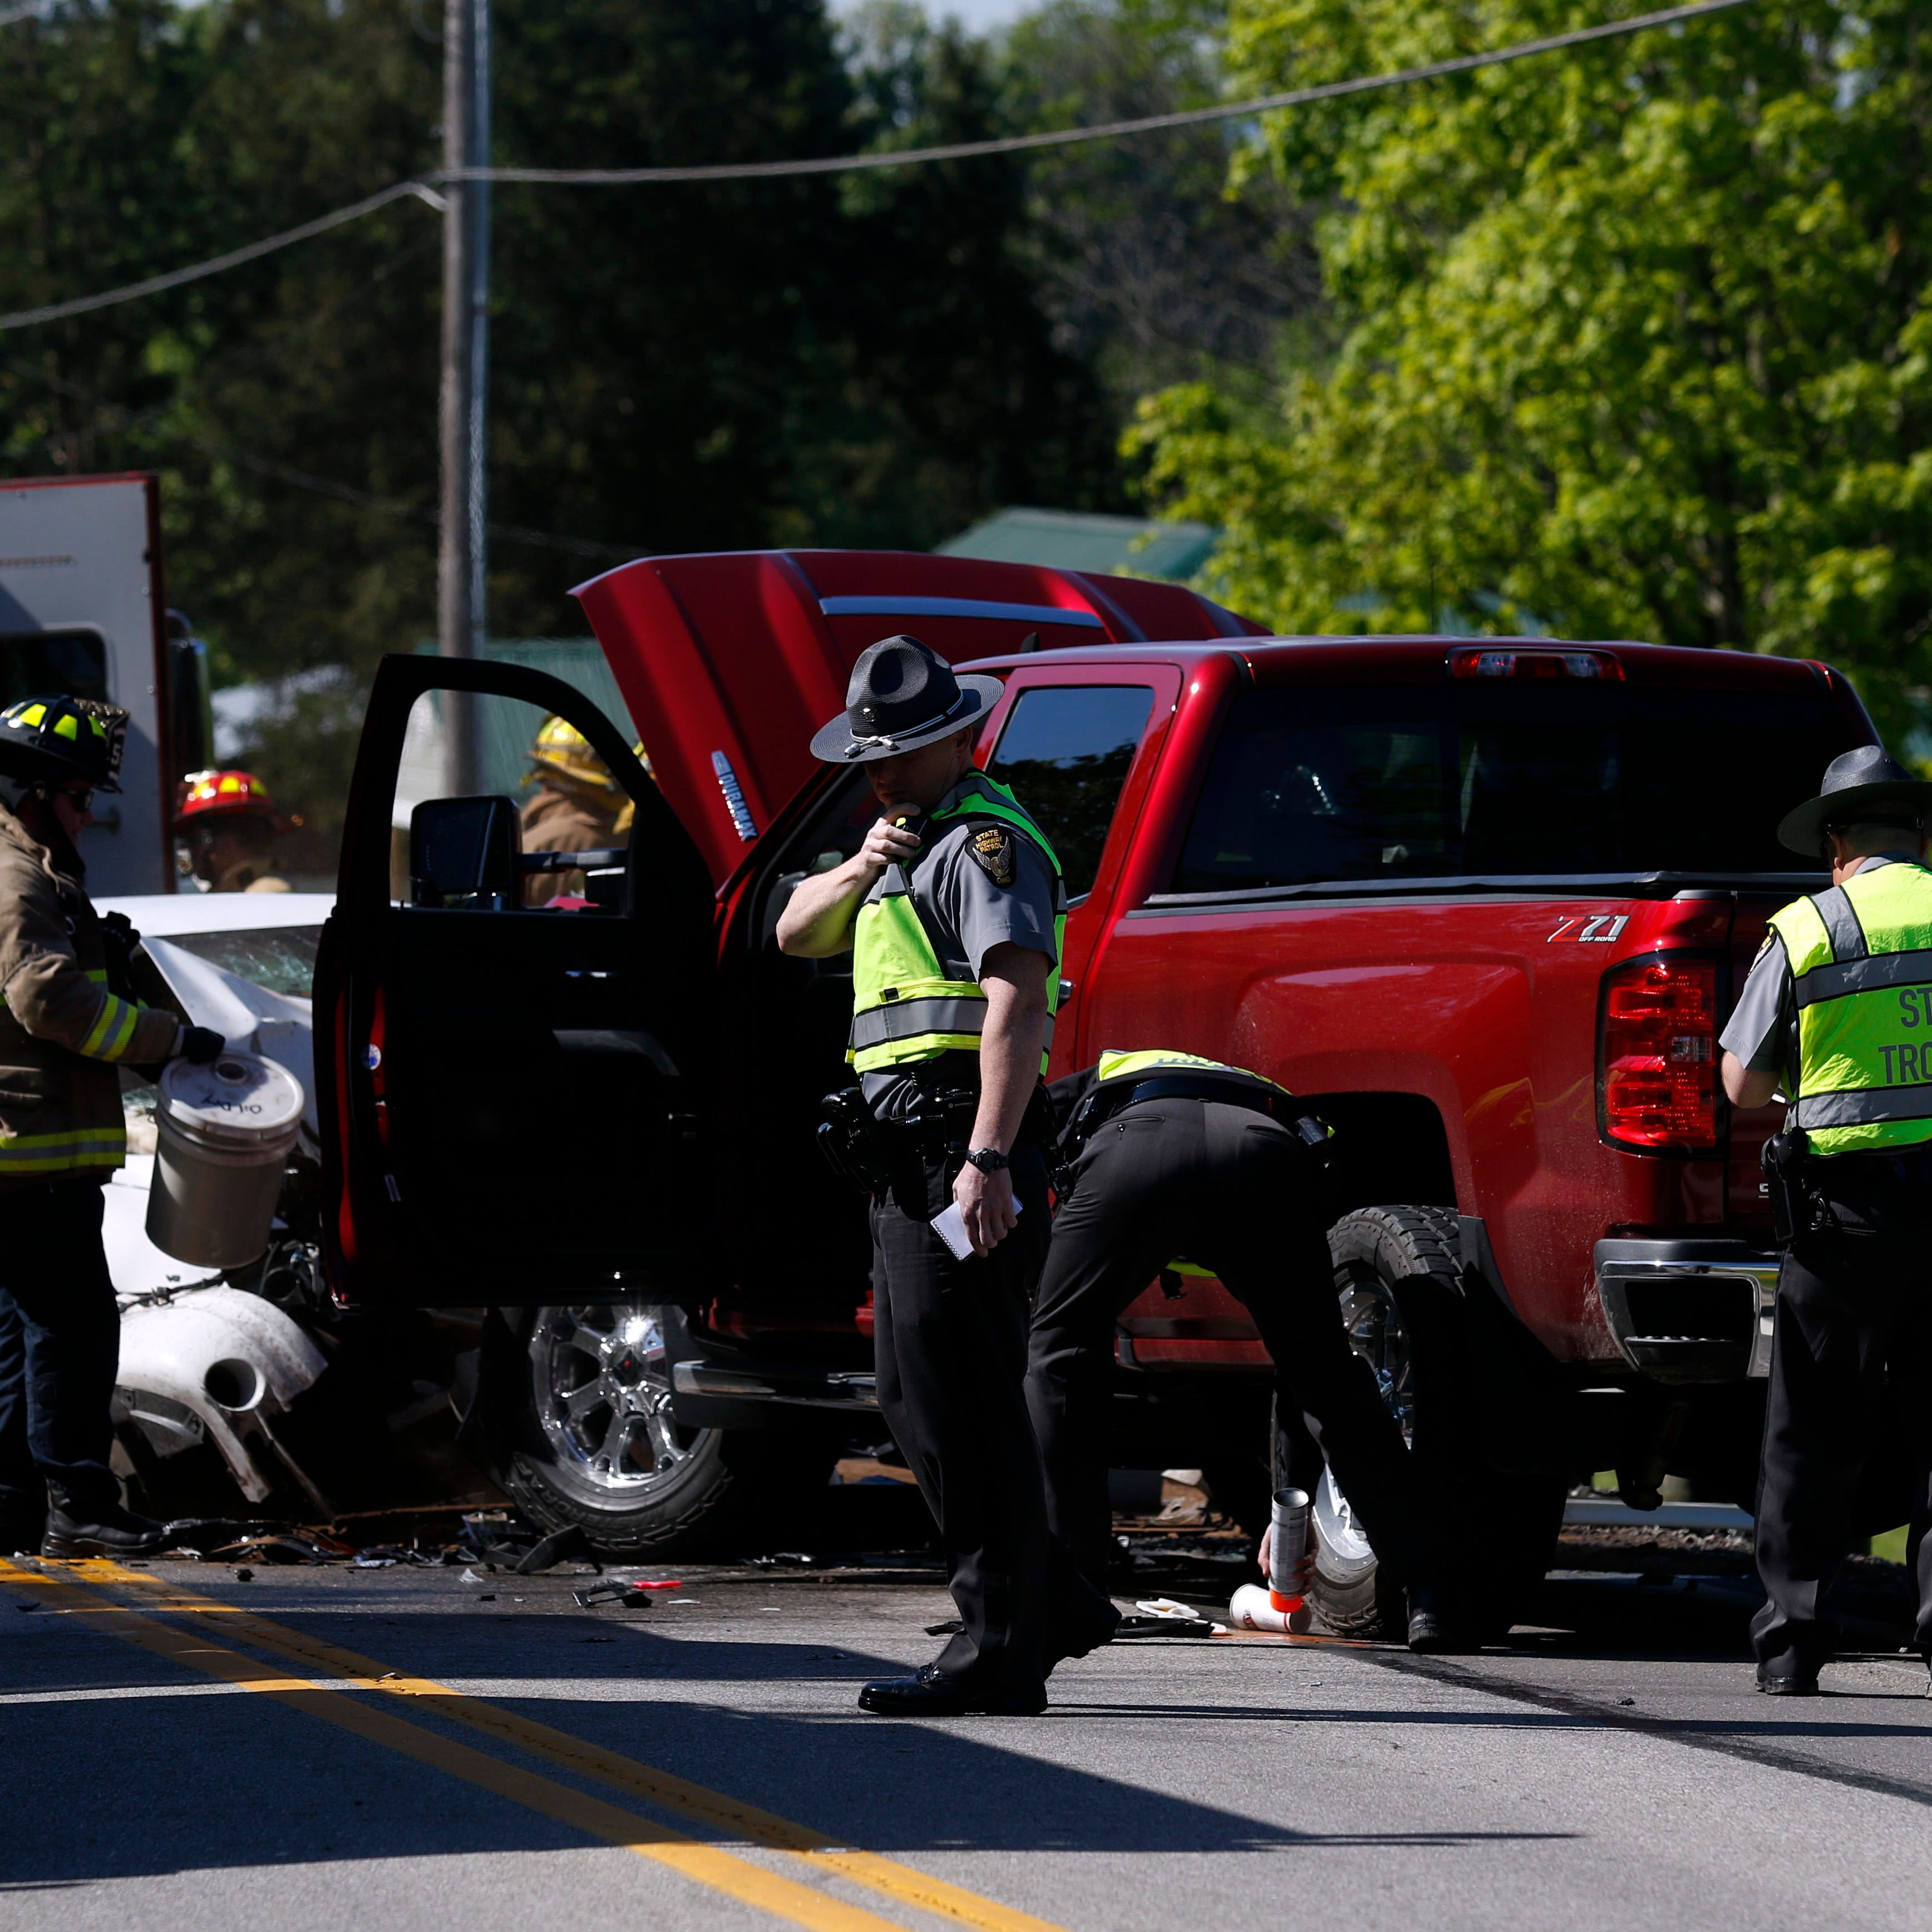 Two injured in three-vehicle crash on Ohio 159